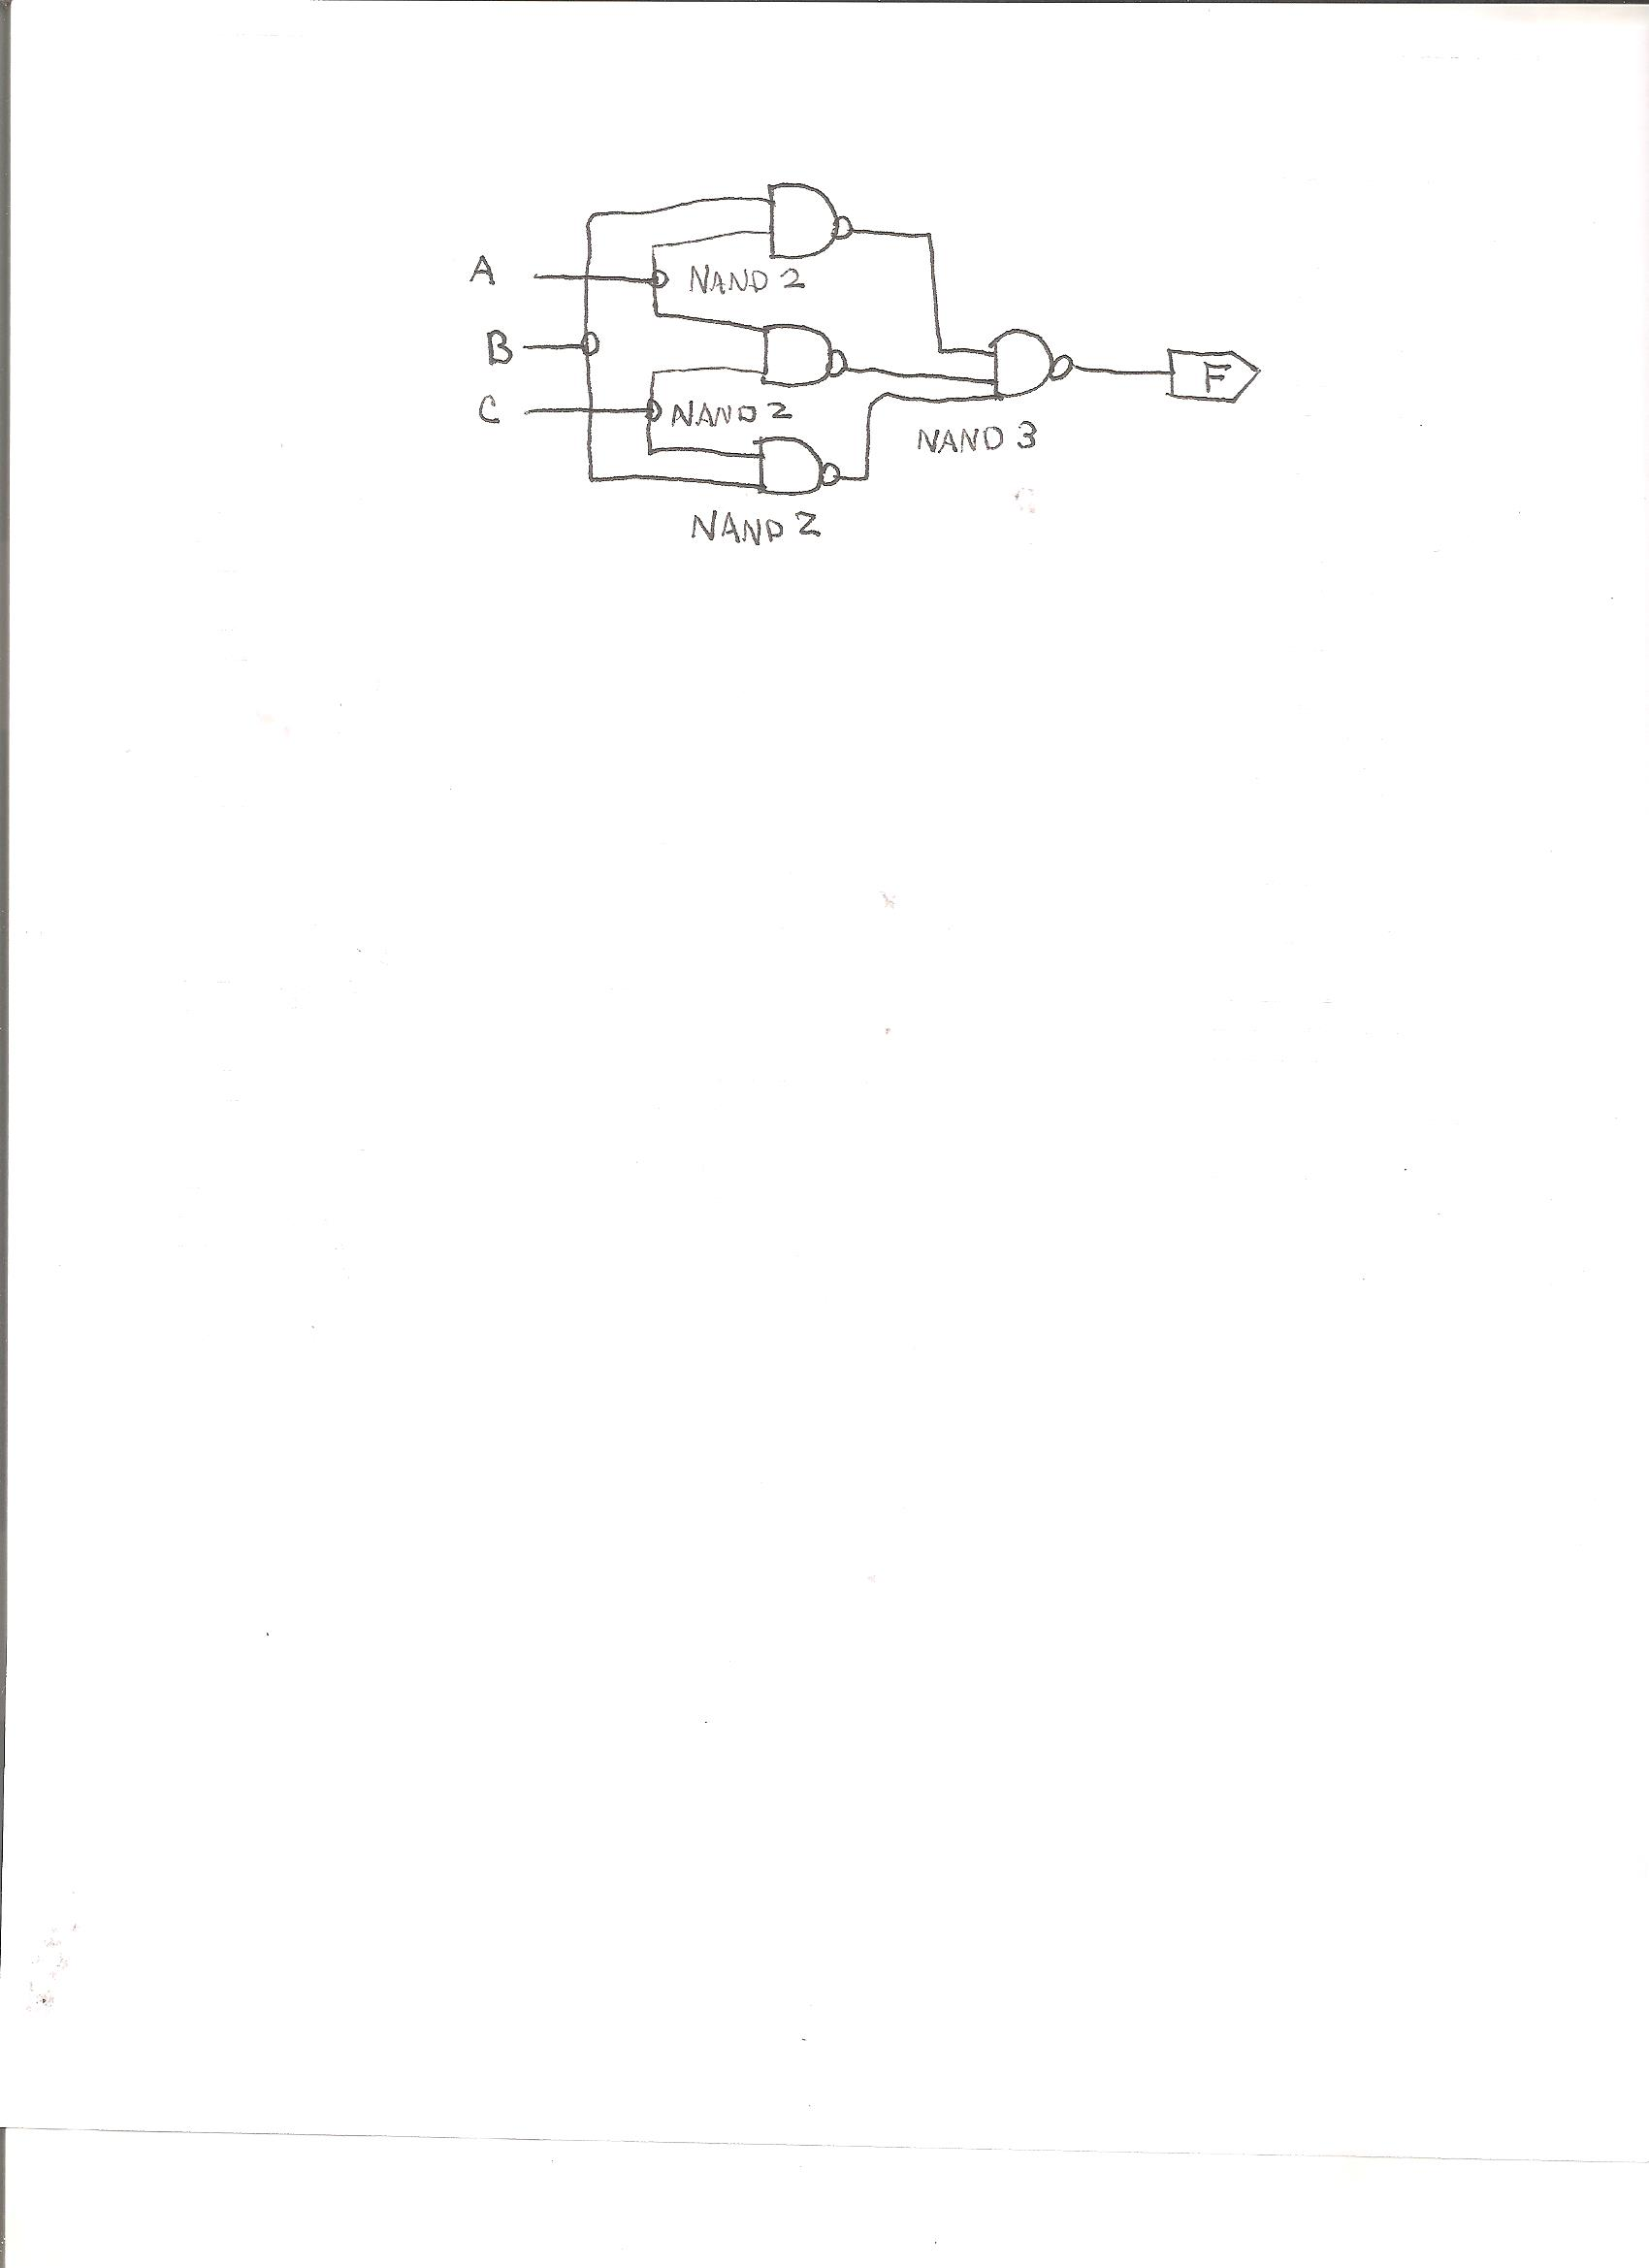 Given the following Logic Circuit Attached: a. Wr